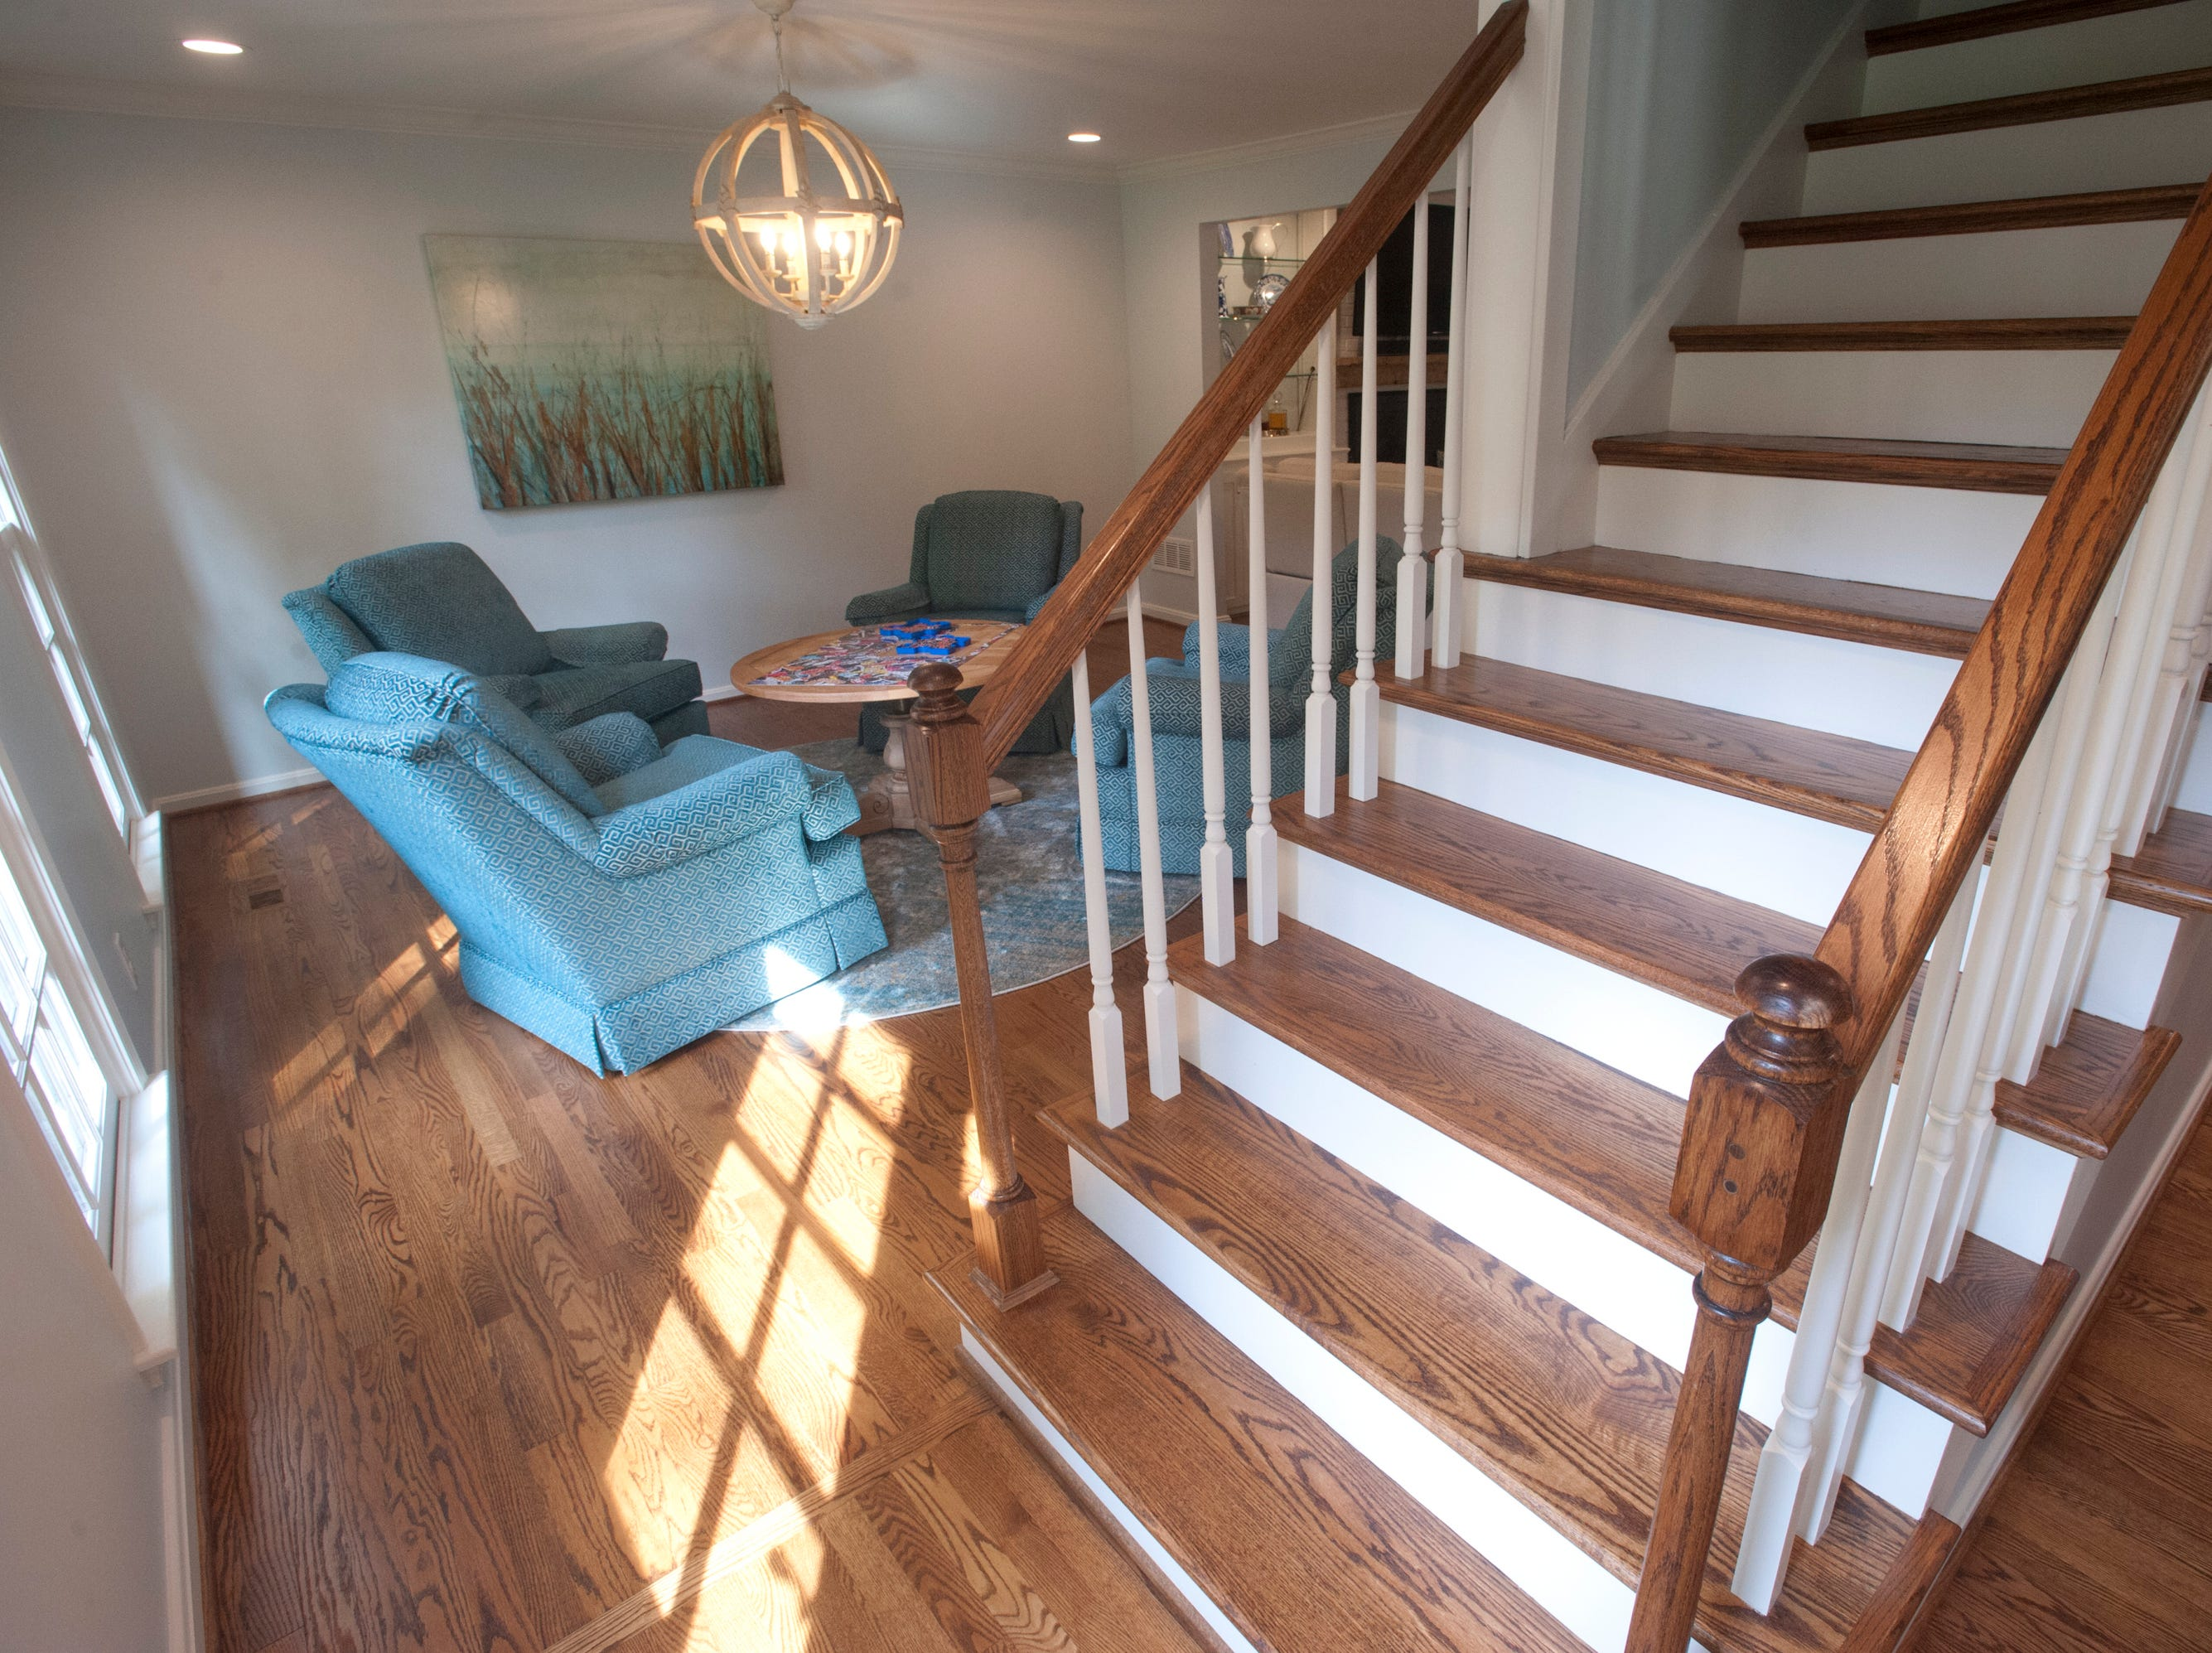 The new open stairway at the home of Jean Hodges which has recently been renovated by Bailey Remodeling, looks into the sitting room which had formerly been the home's living room.